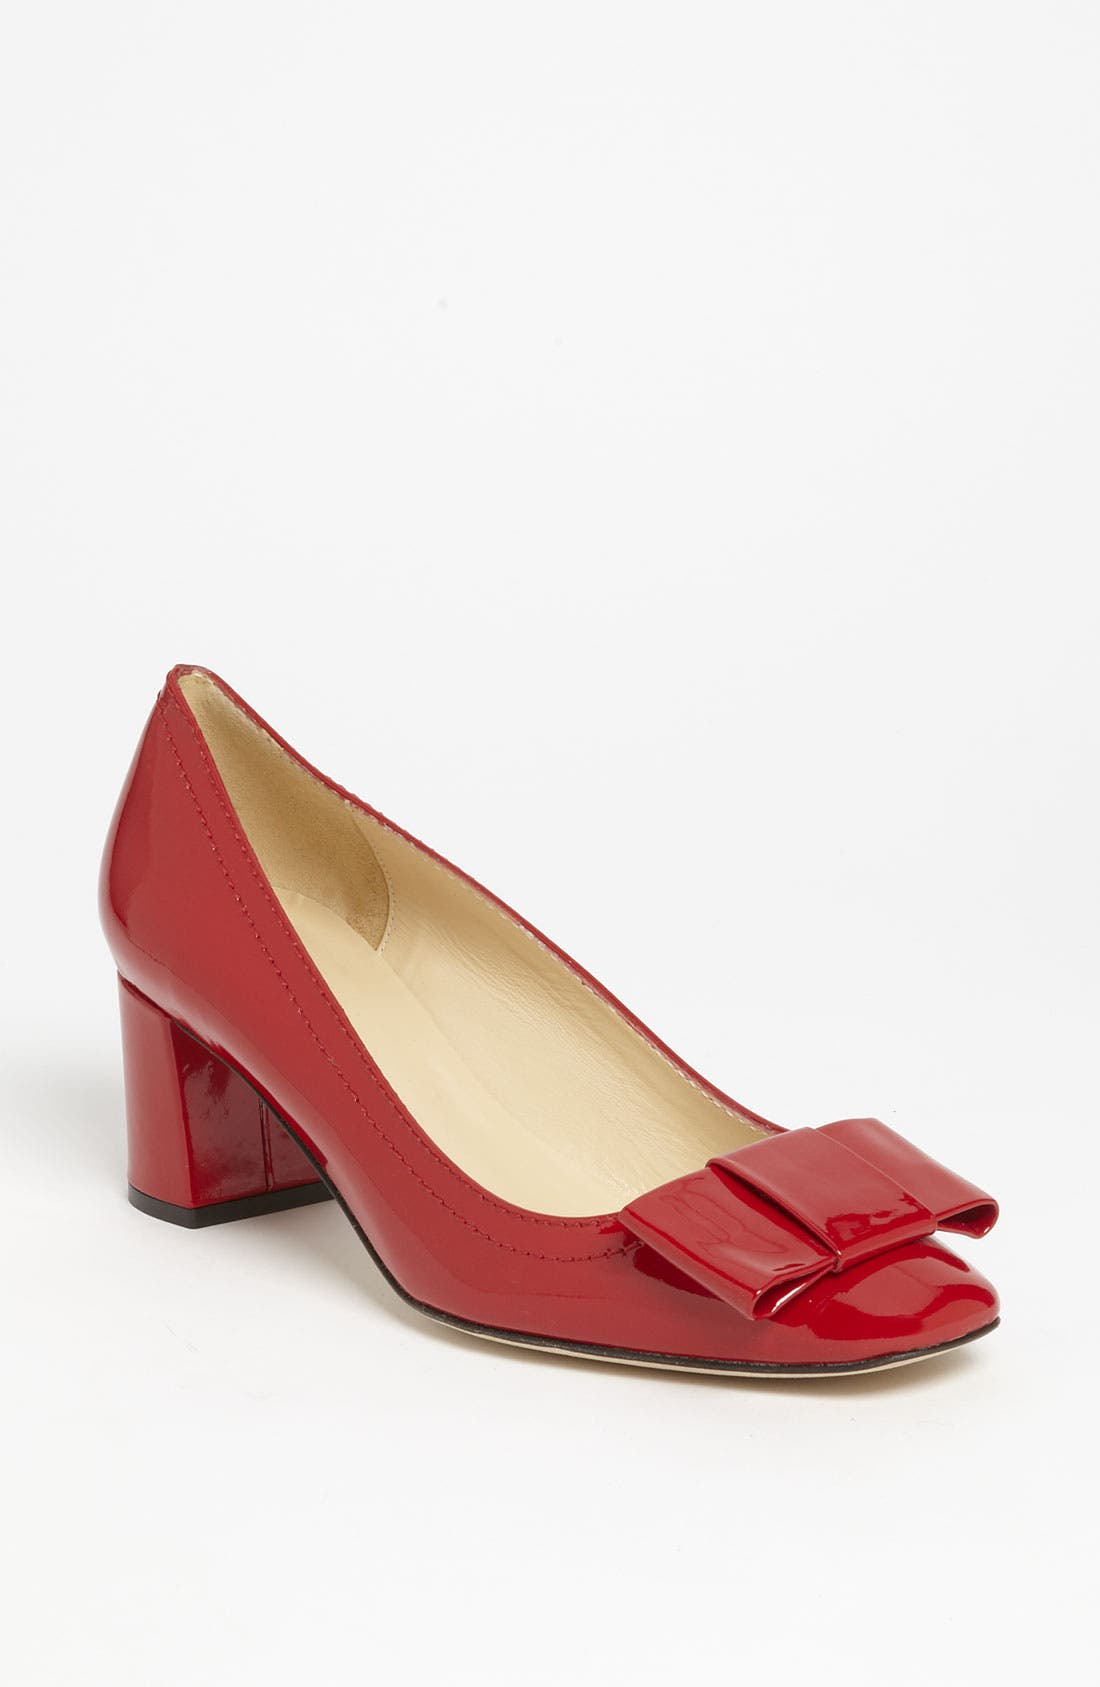 Alternate Image 1 Selected - kate spade new york 'dijon' pump